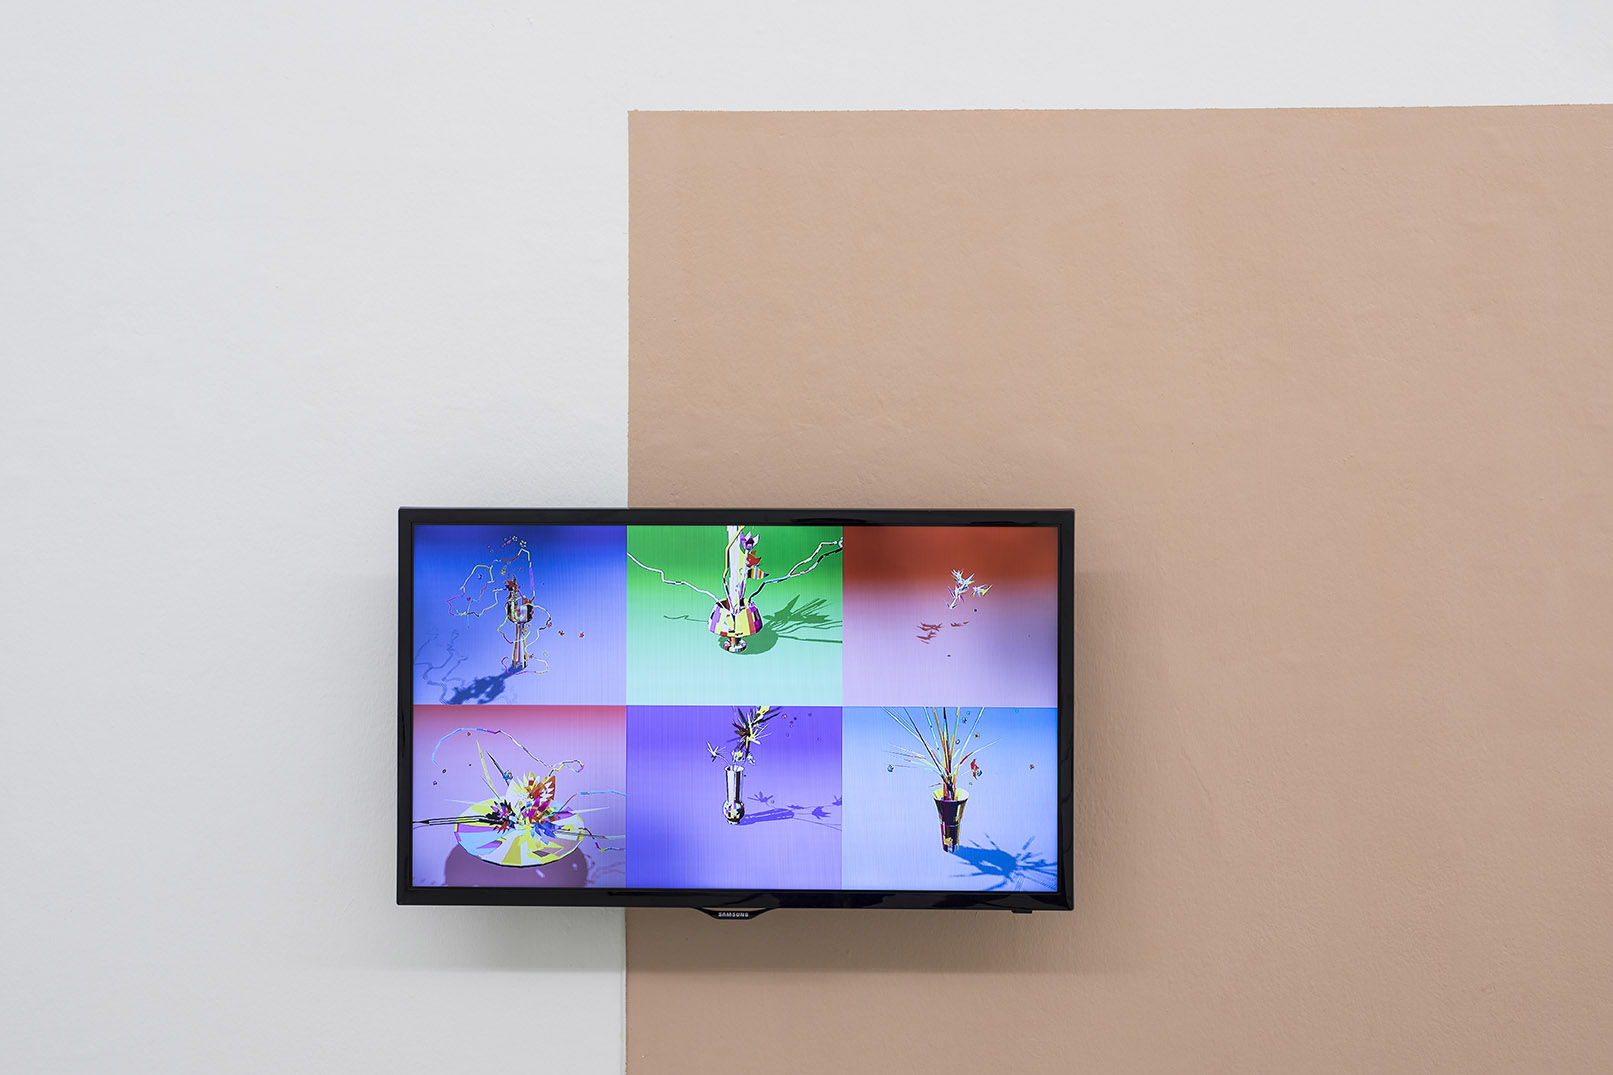 Douglas Coupland With Helios Design Labs, Toronto, Electric Ikebana, video, 2012 Vista dell'installazione, foto Guadagnino e Sorvillo, @argekunst.